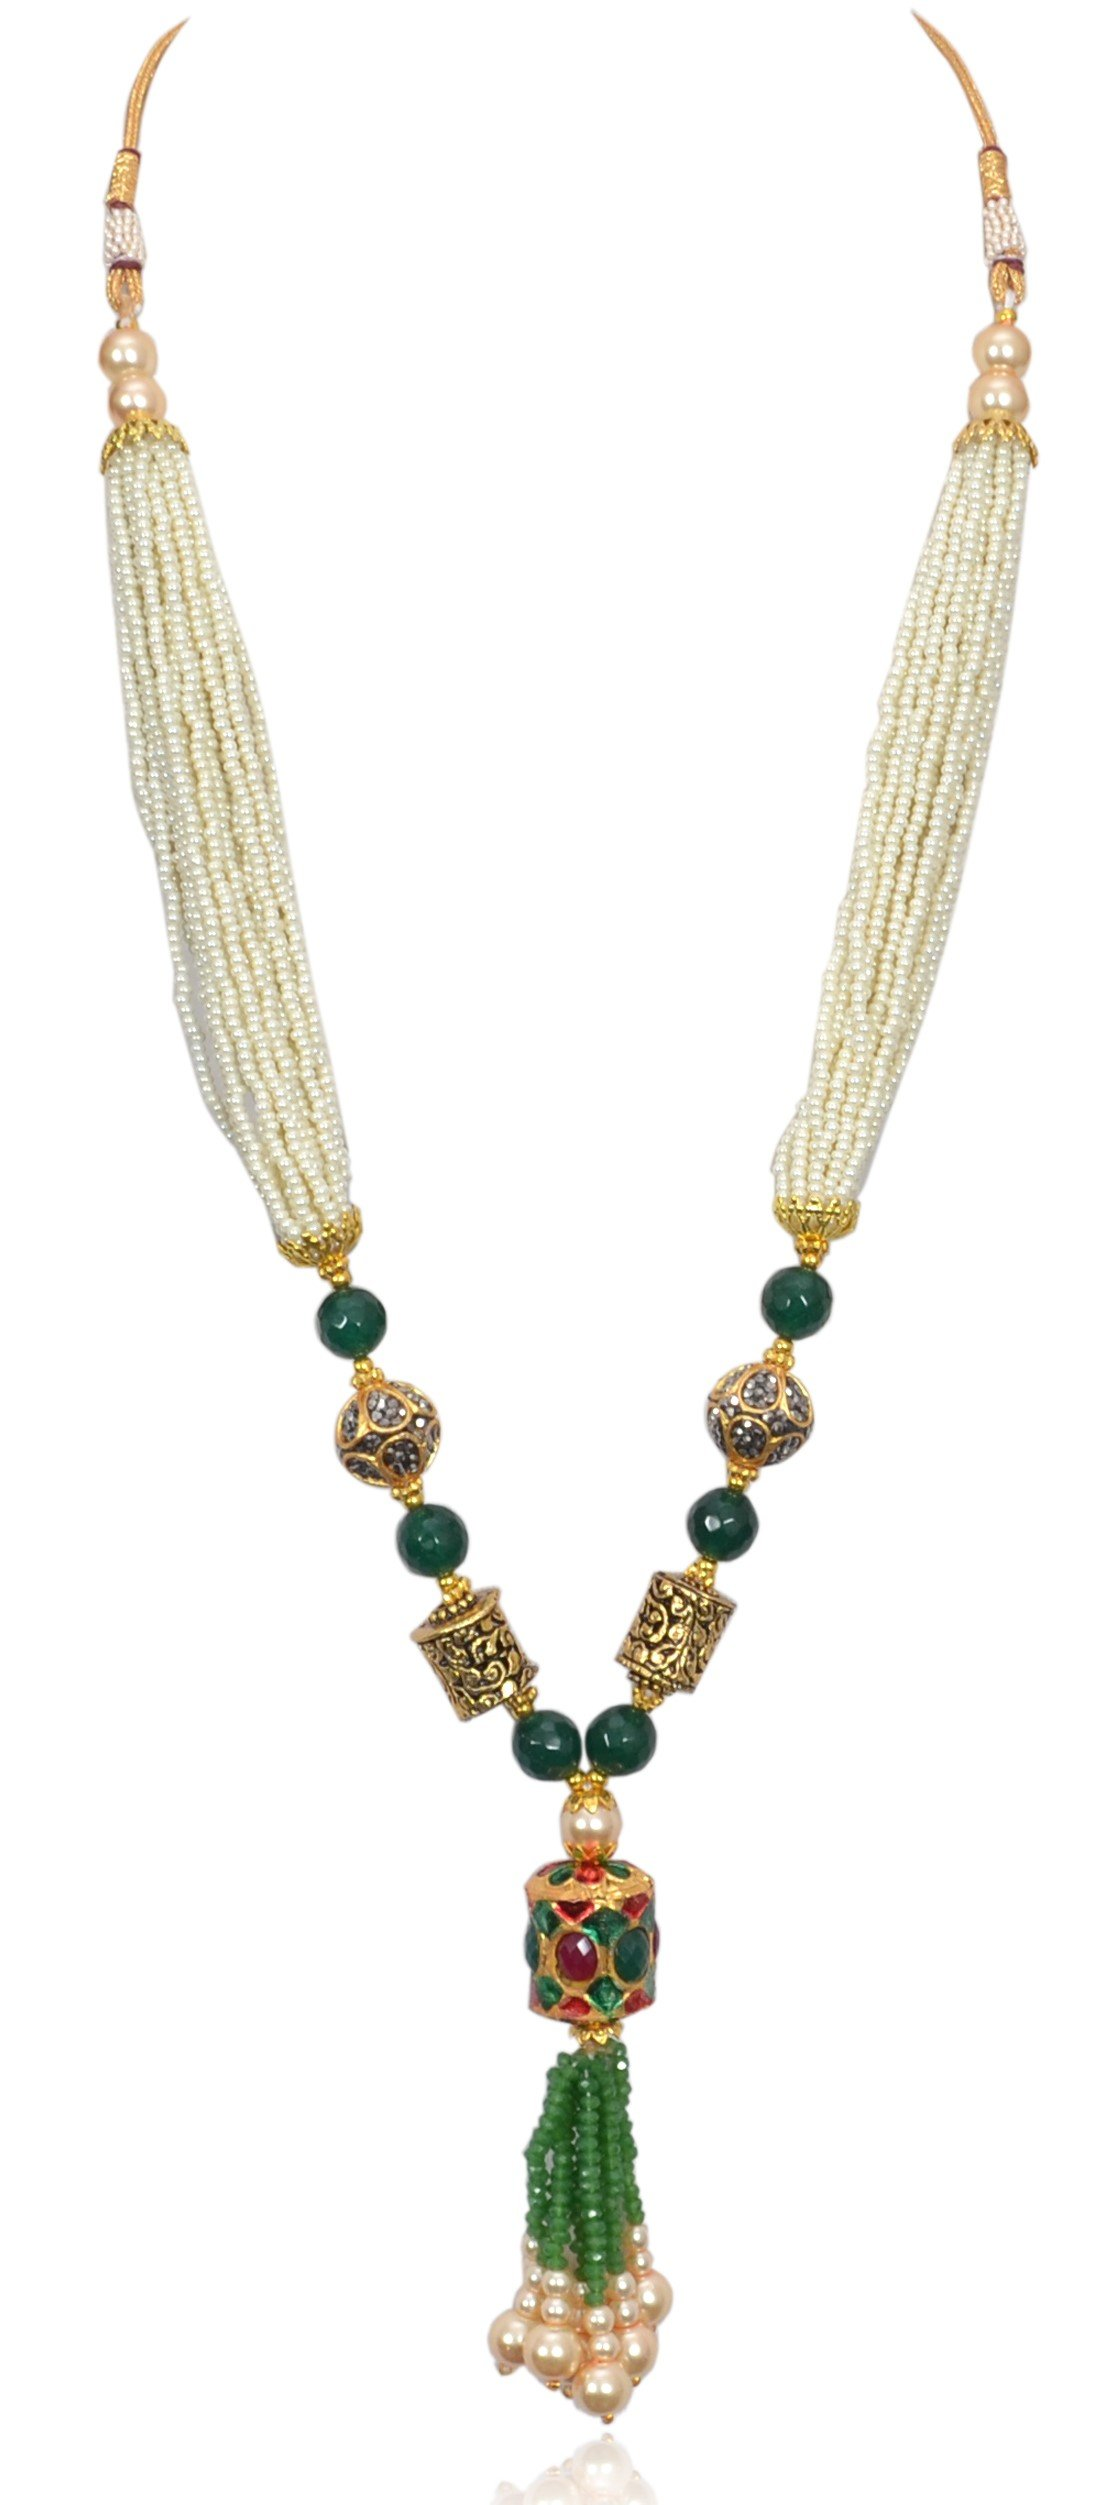 Sansar India Beaded Tassel Indian Necklace Jewelry for Girls and Women 1265